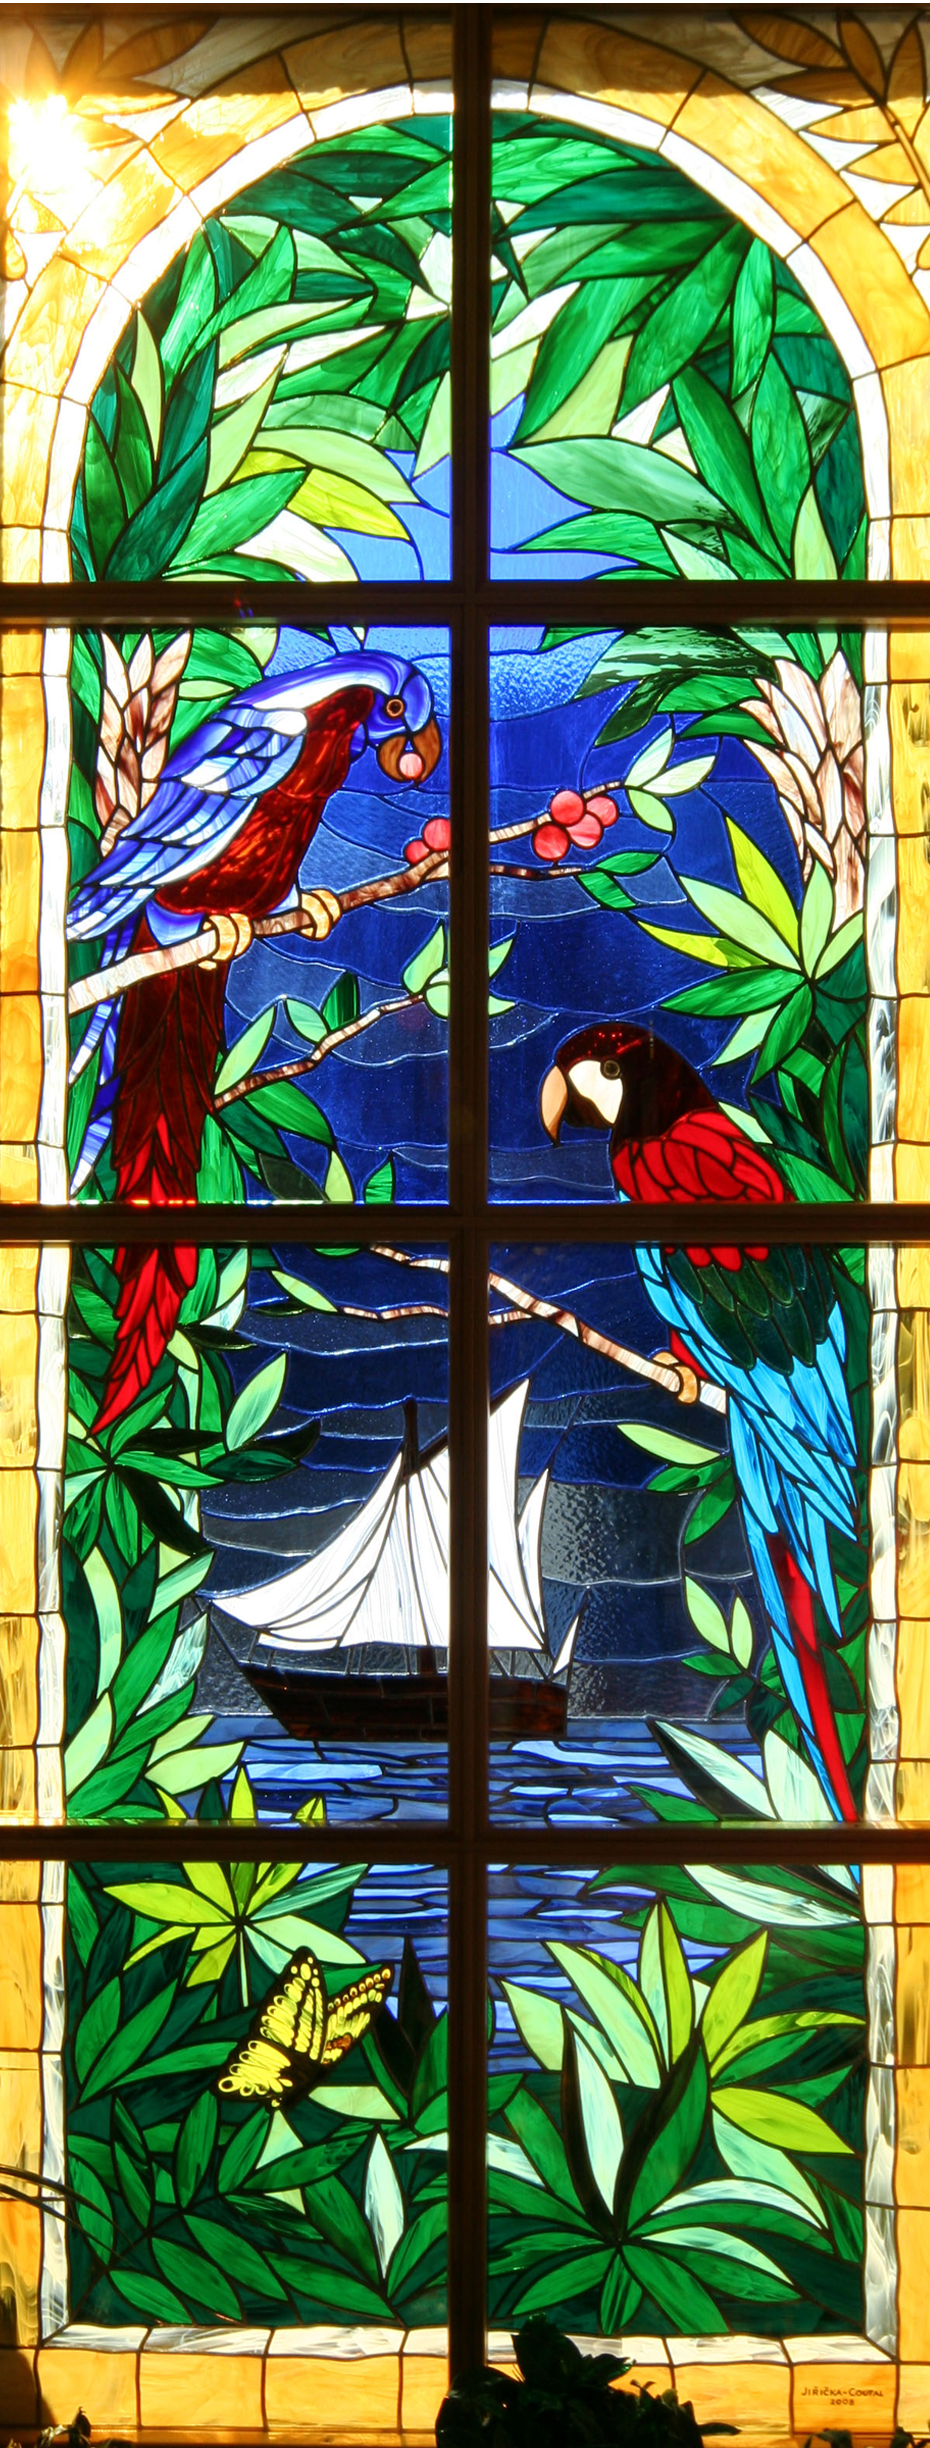 "ART STAINED GLASS PAINTER RADEK PÁNÍK - ""BAY WITH SAILBOATS AND PARROT"", ART CARTON AND REALIZATION"